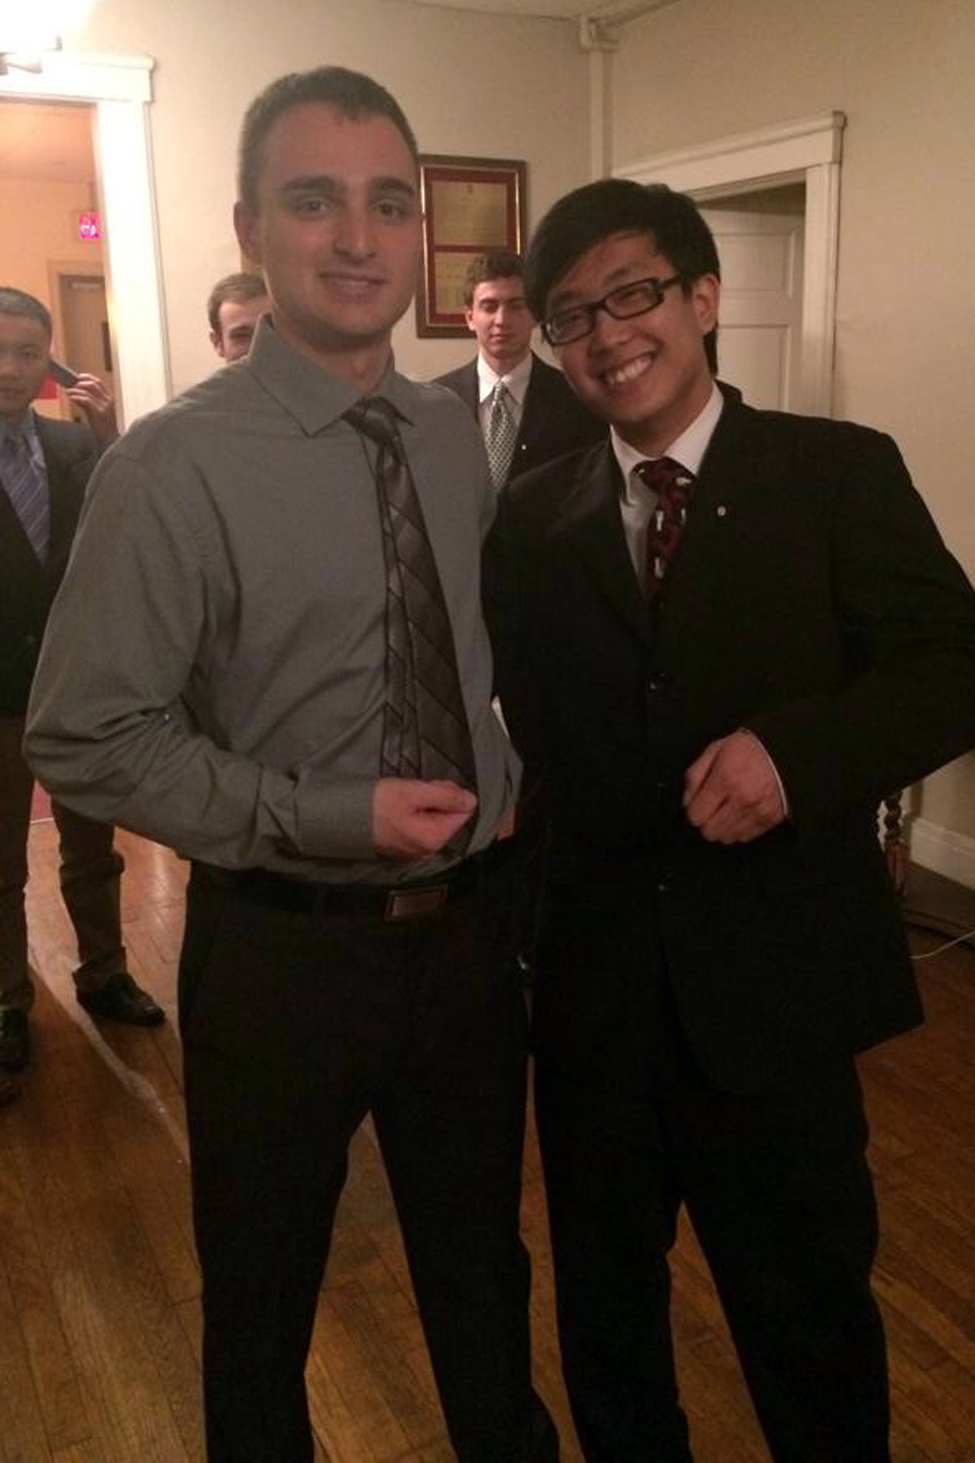 Alex Patton and Johnny Kwon - Spring 2014 Initiation Night - April 2014